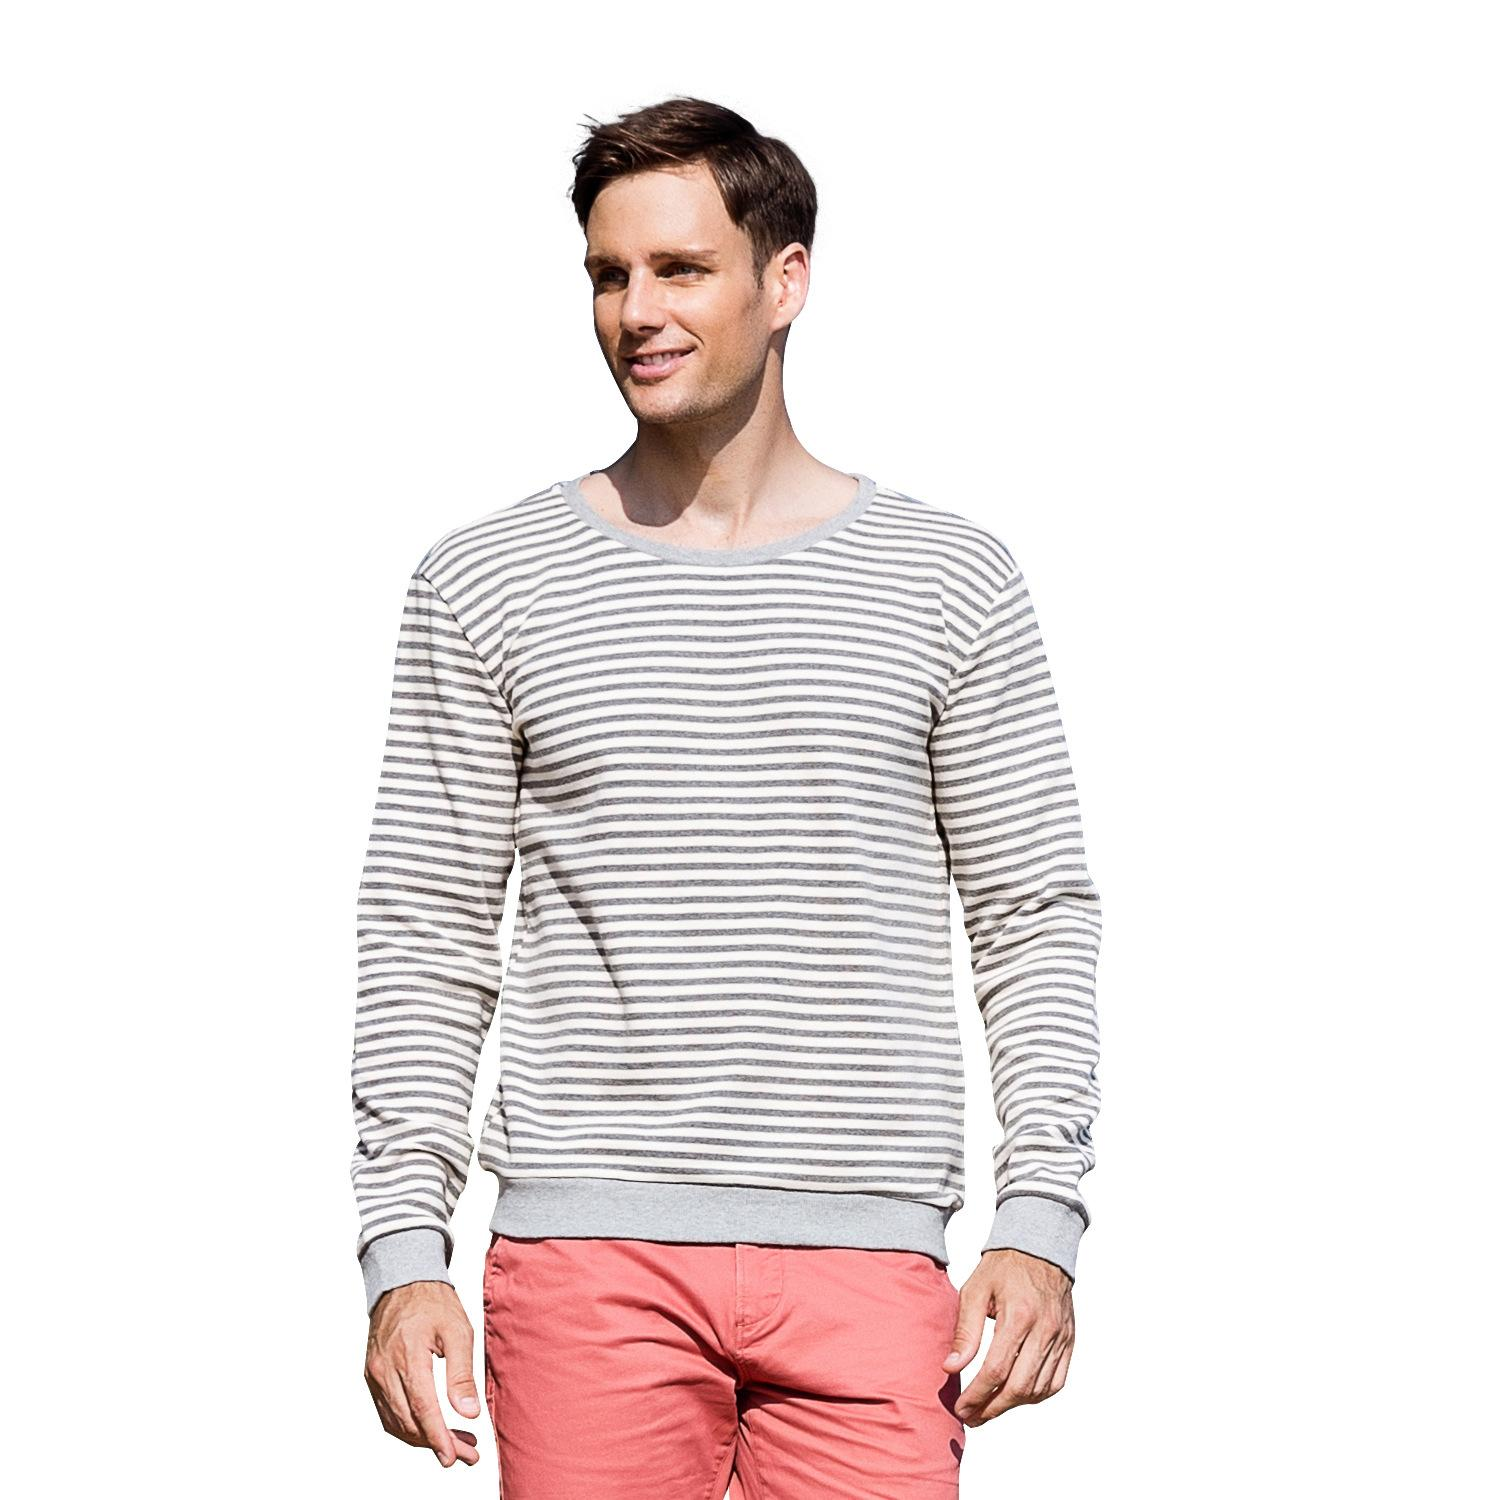 f7ce15c1b3a Wholesale Mens Pure Cotton Stripes 2018 Brand Fashion Luxury Designer  Sweatshirt Circular Collar Thickening Mens Big And Tall T-shirt